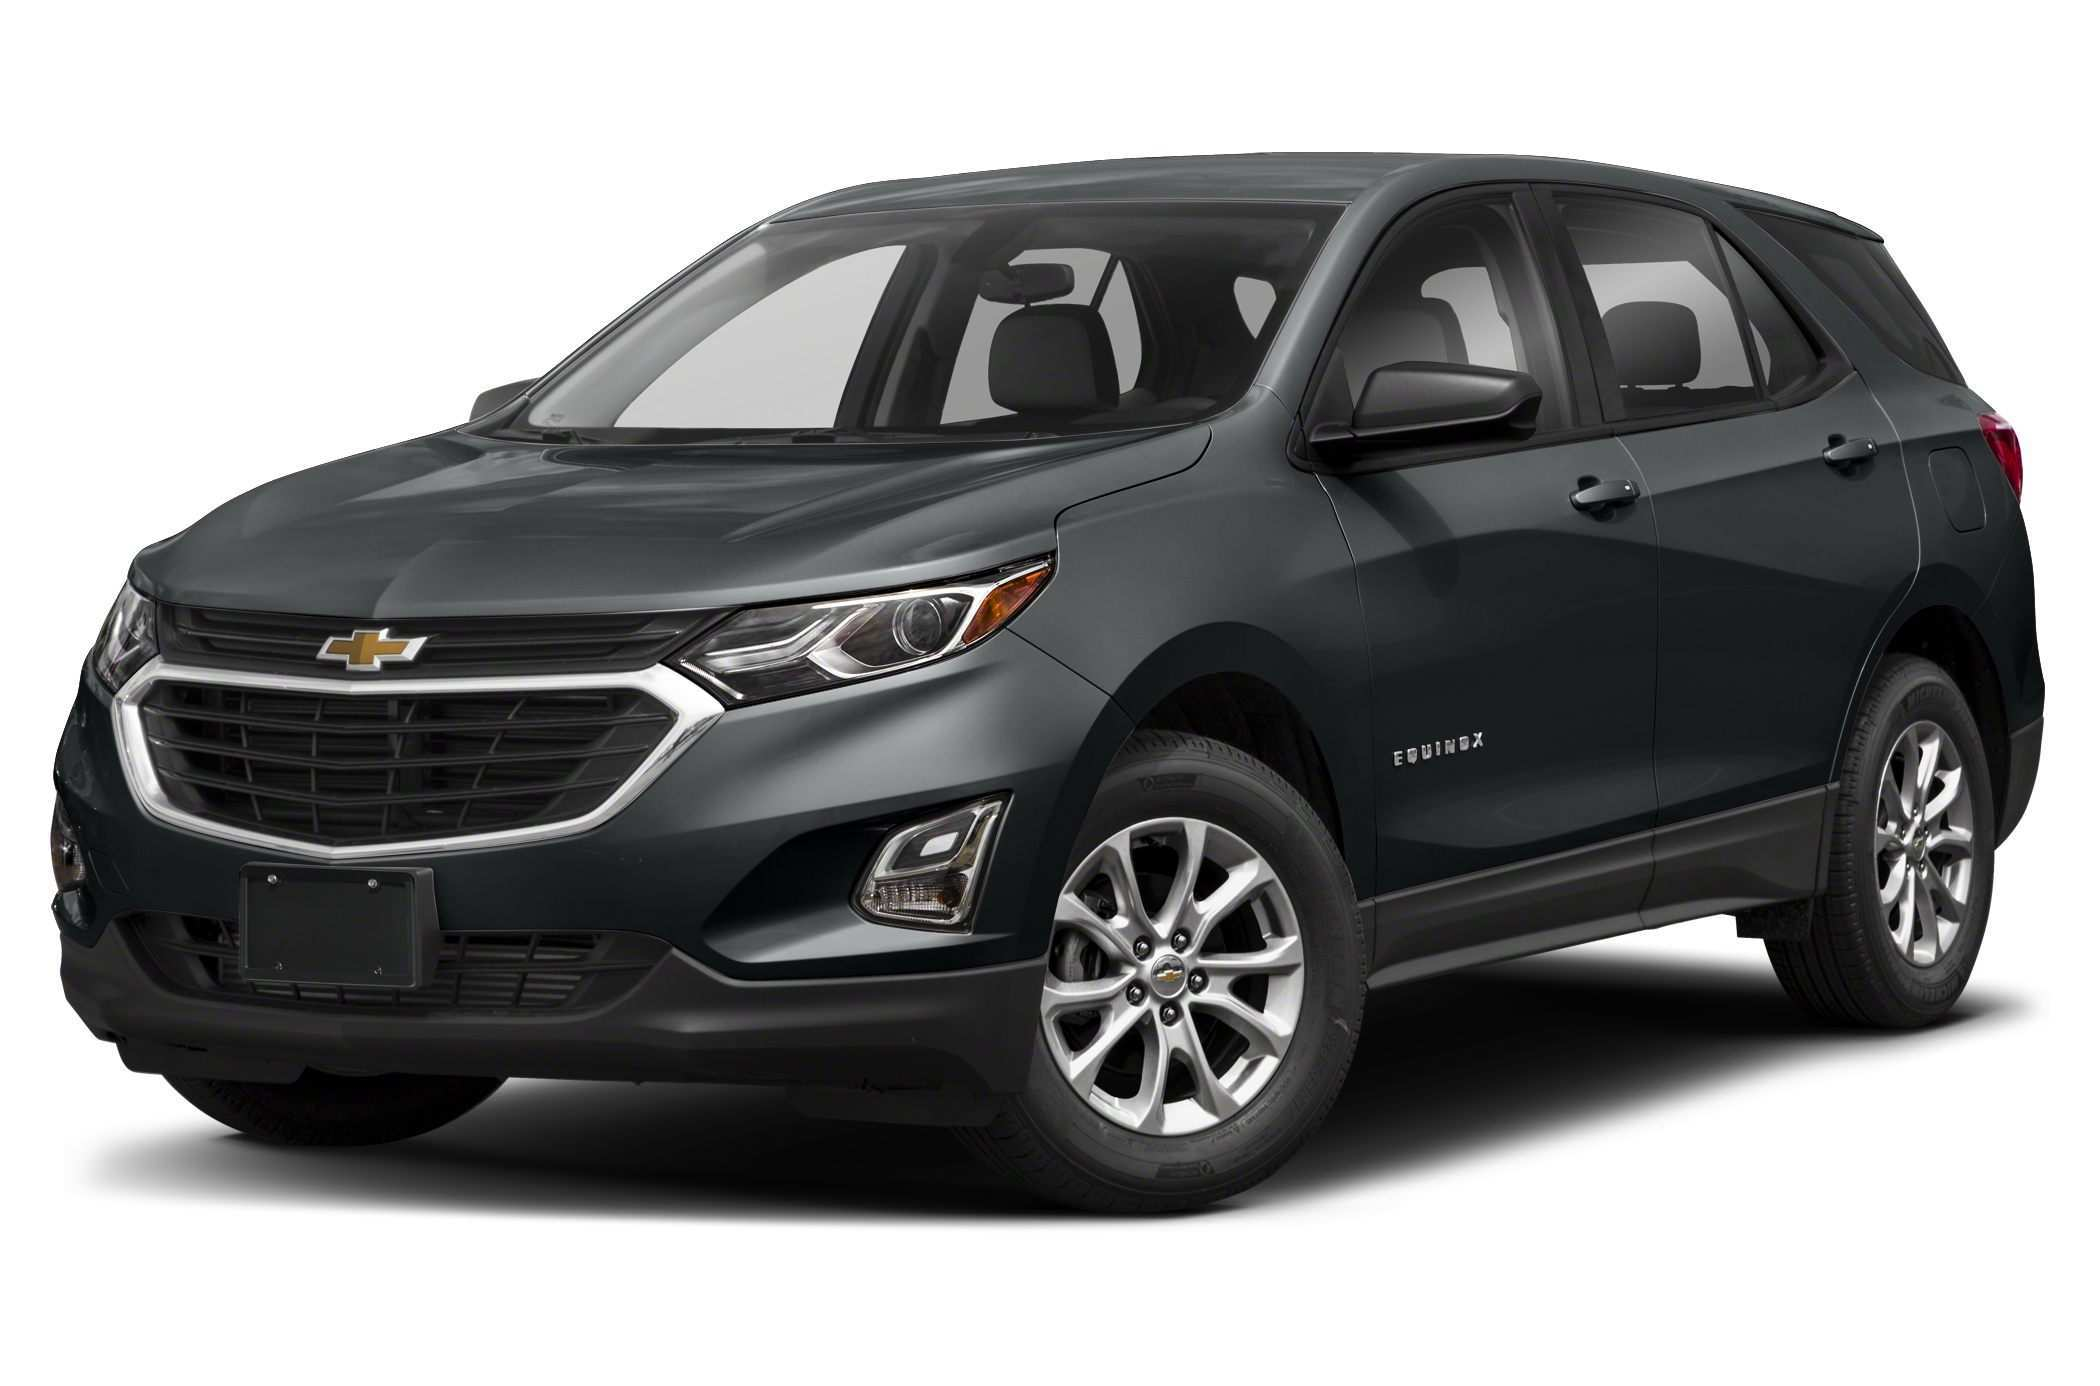 55 The 2019 Chevrolet Equinox Price